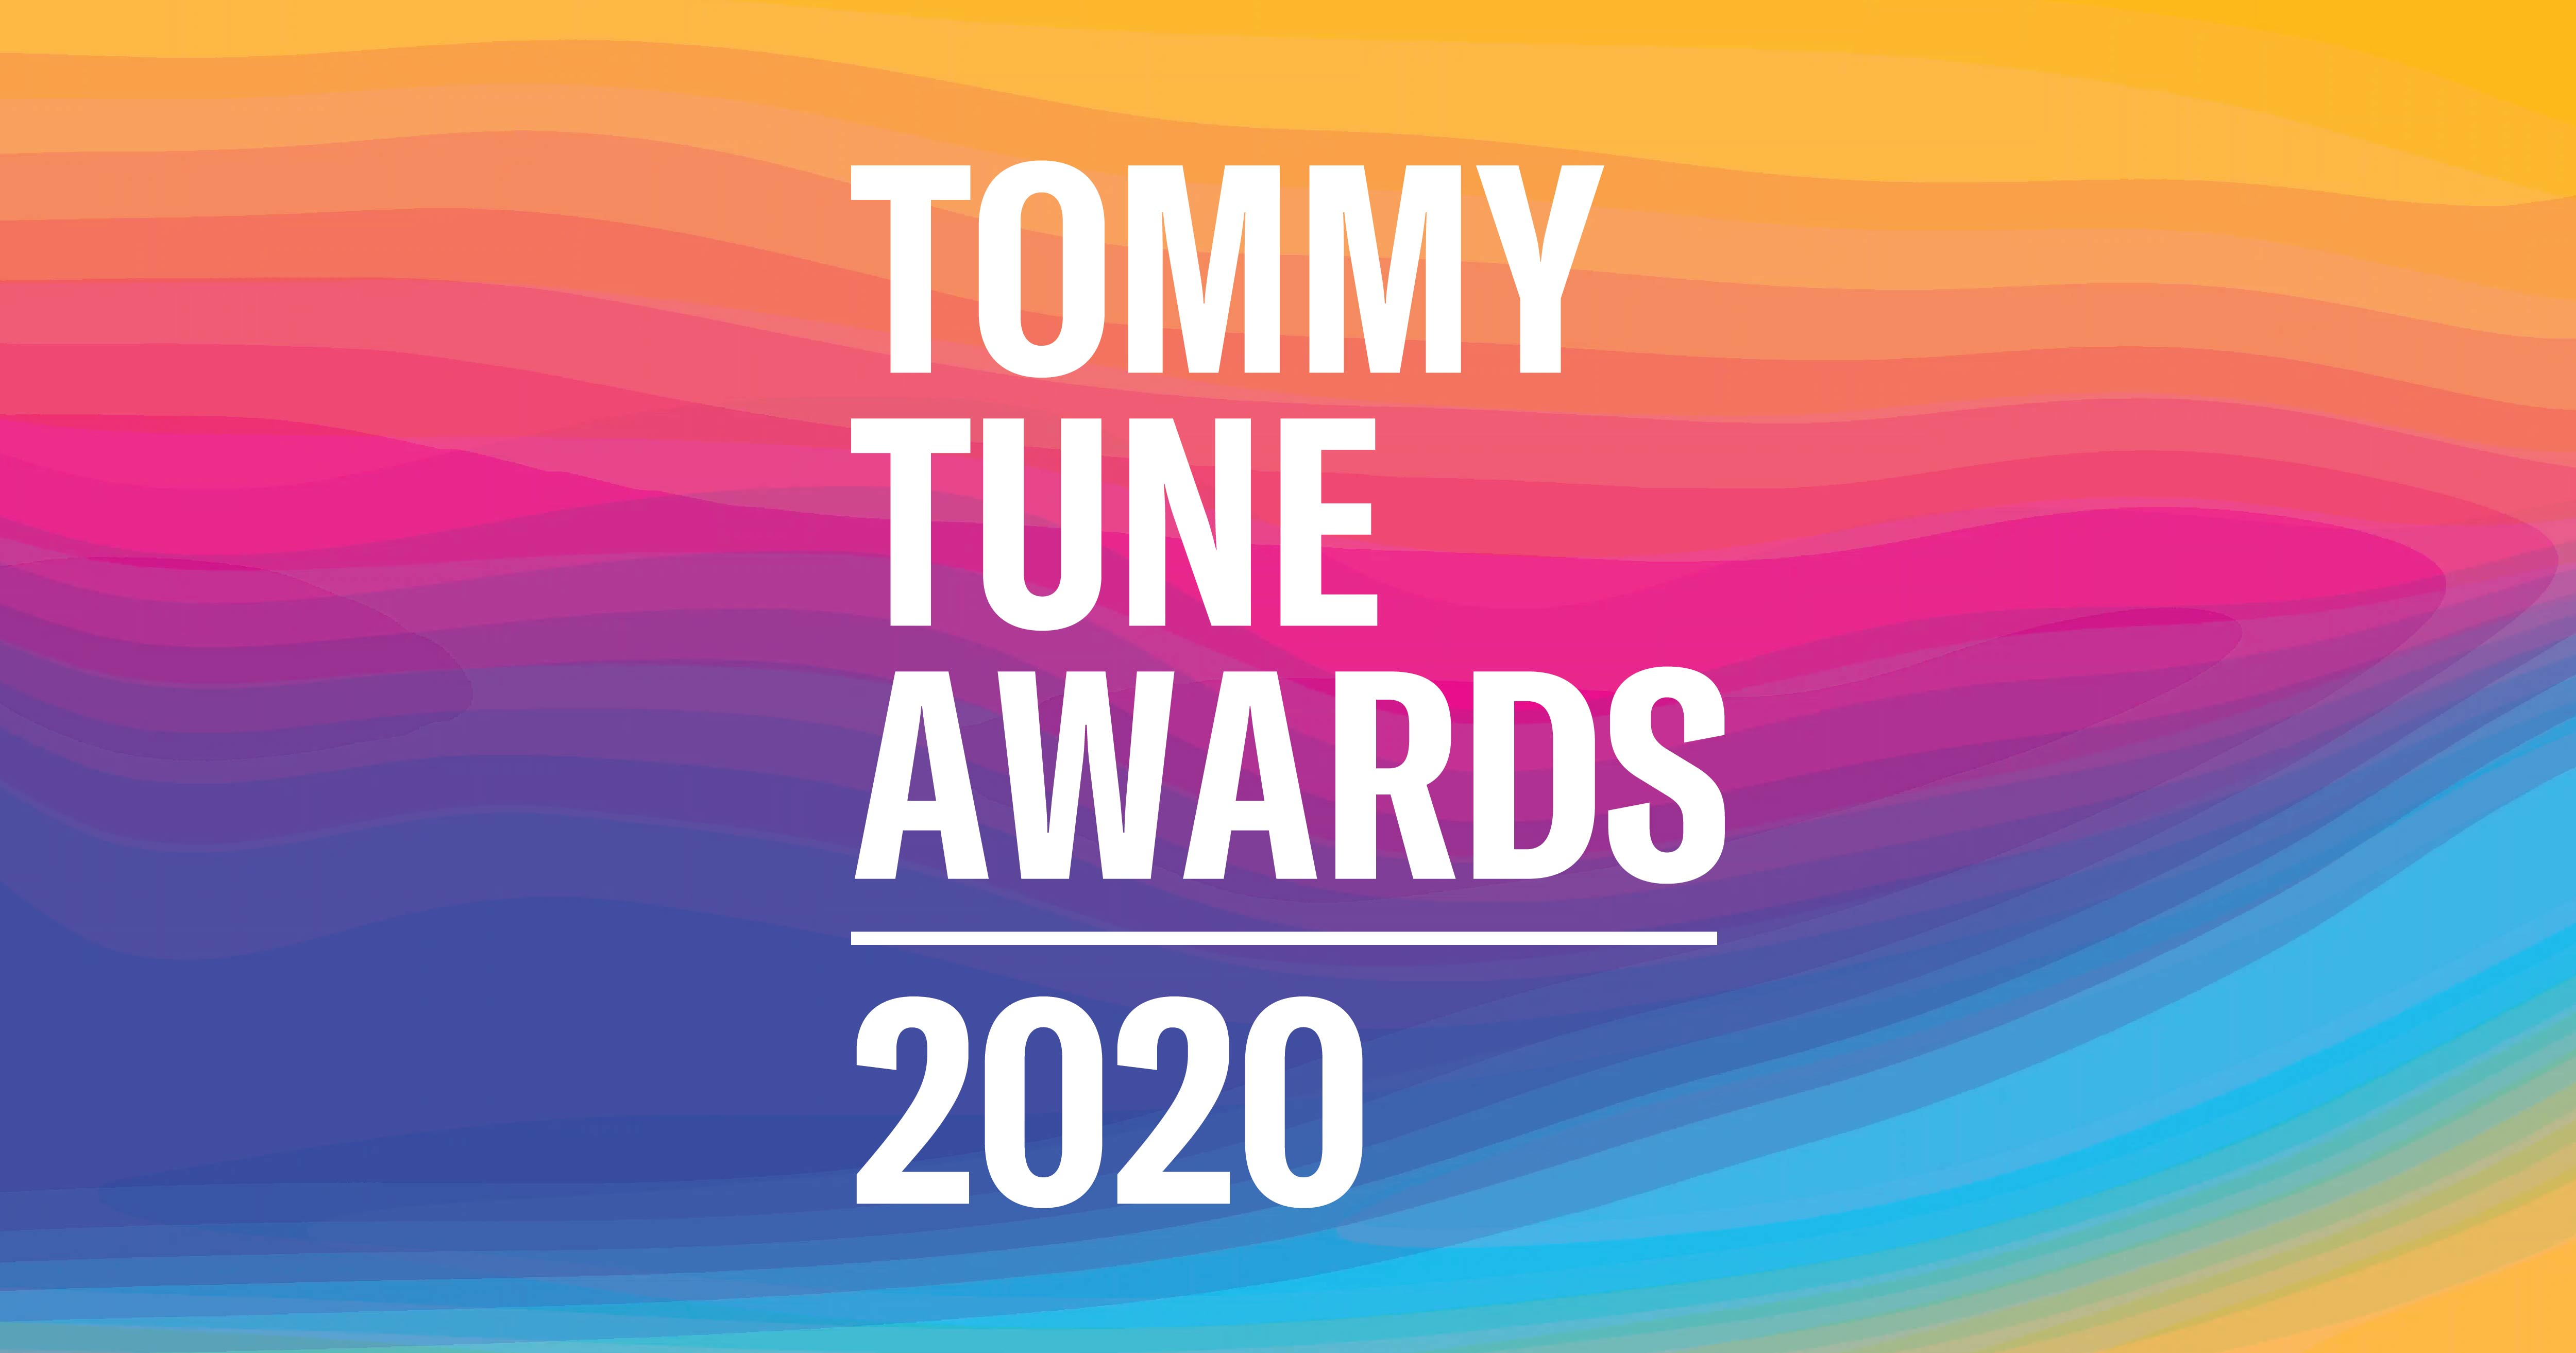 Tommy Tune Awards